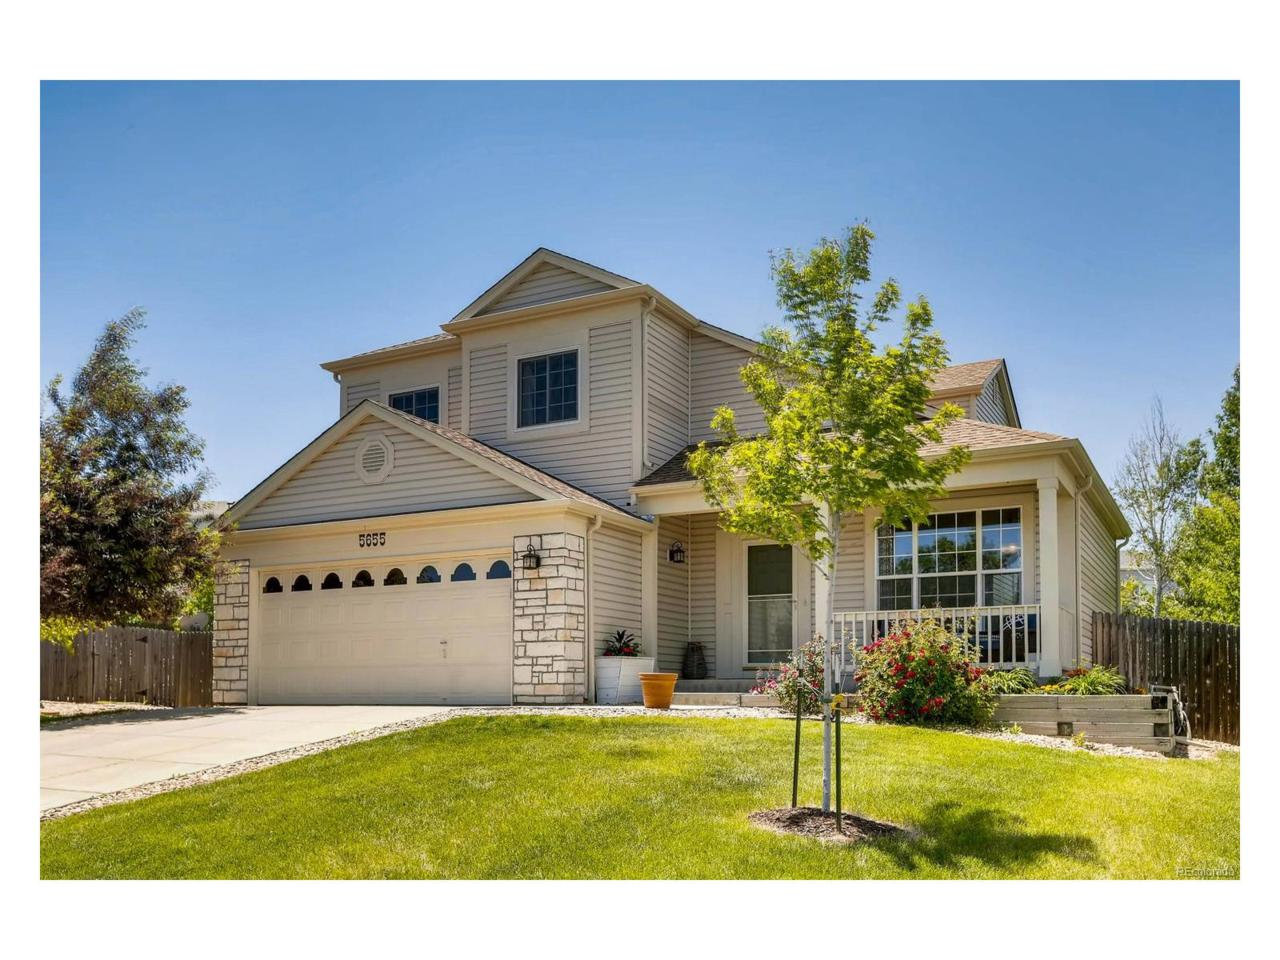 5655 S Sicily Court, Aurora, CO 80015 (MLS #7244117) :: 8z Real Estate